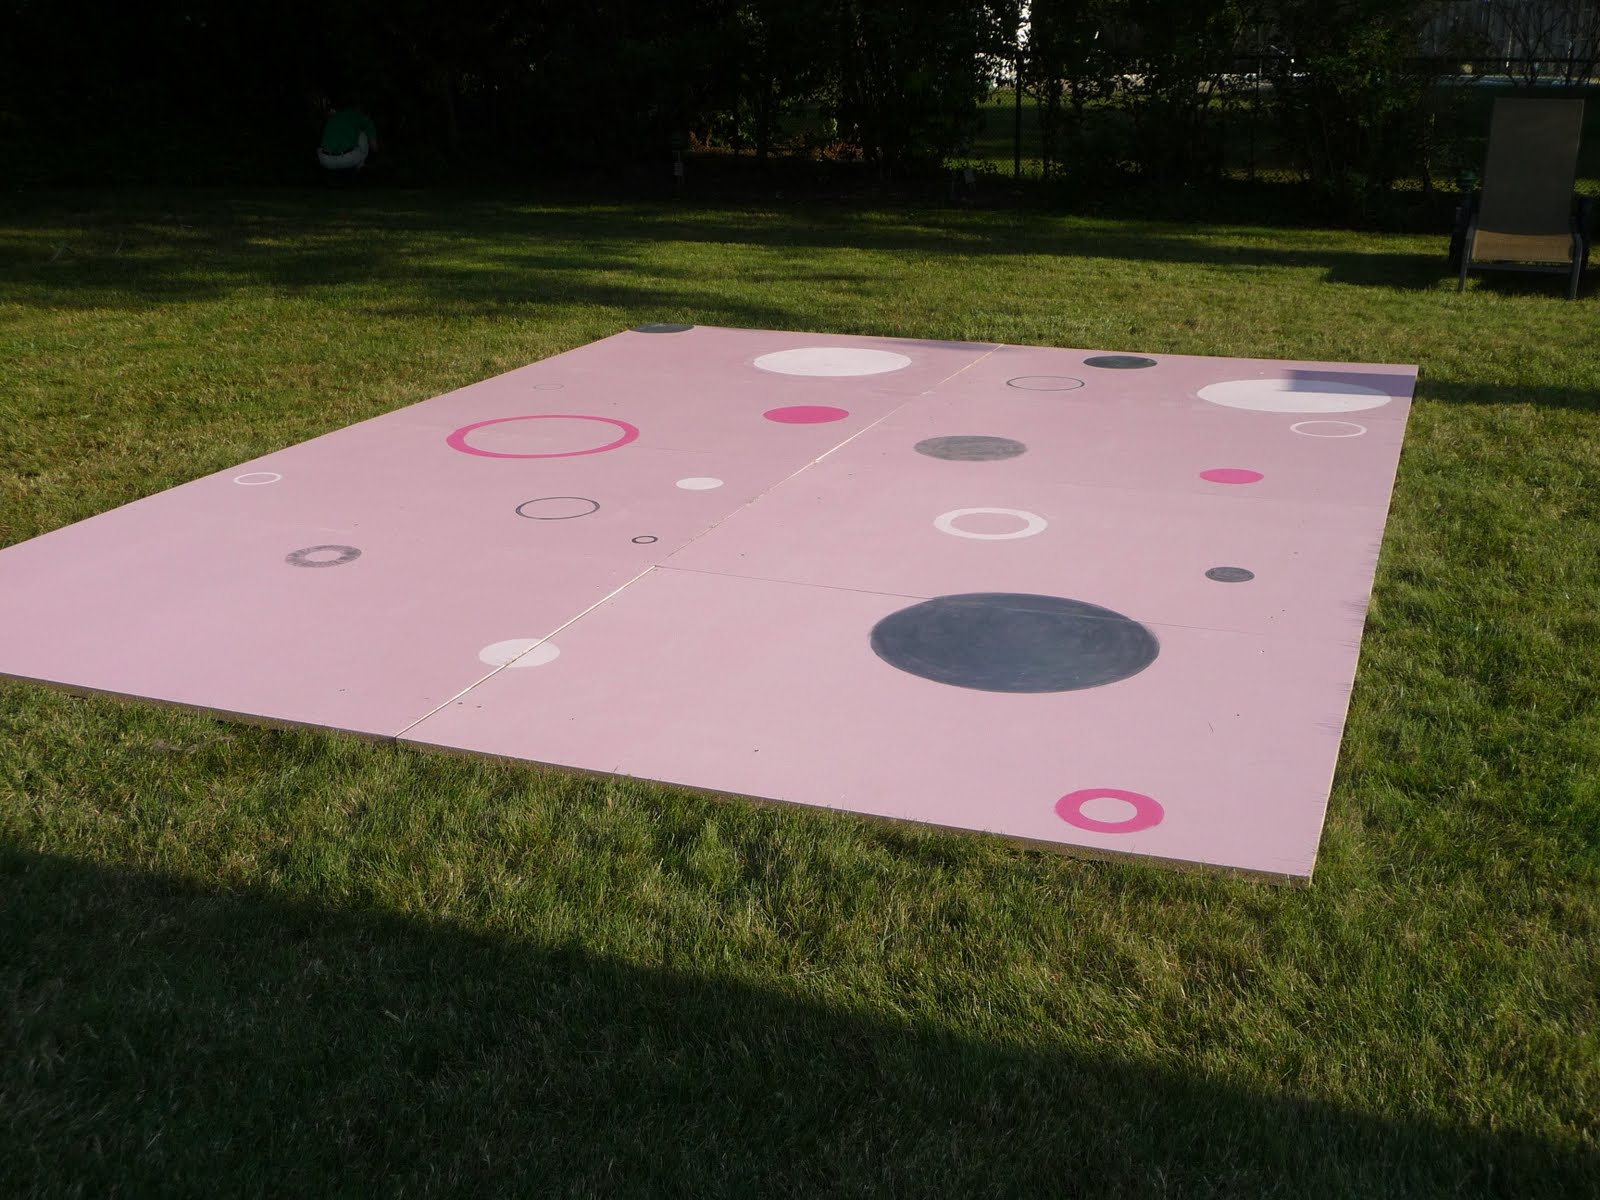 Diy dance floor for a teen party design dazzle for Homemade flooring ideas